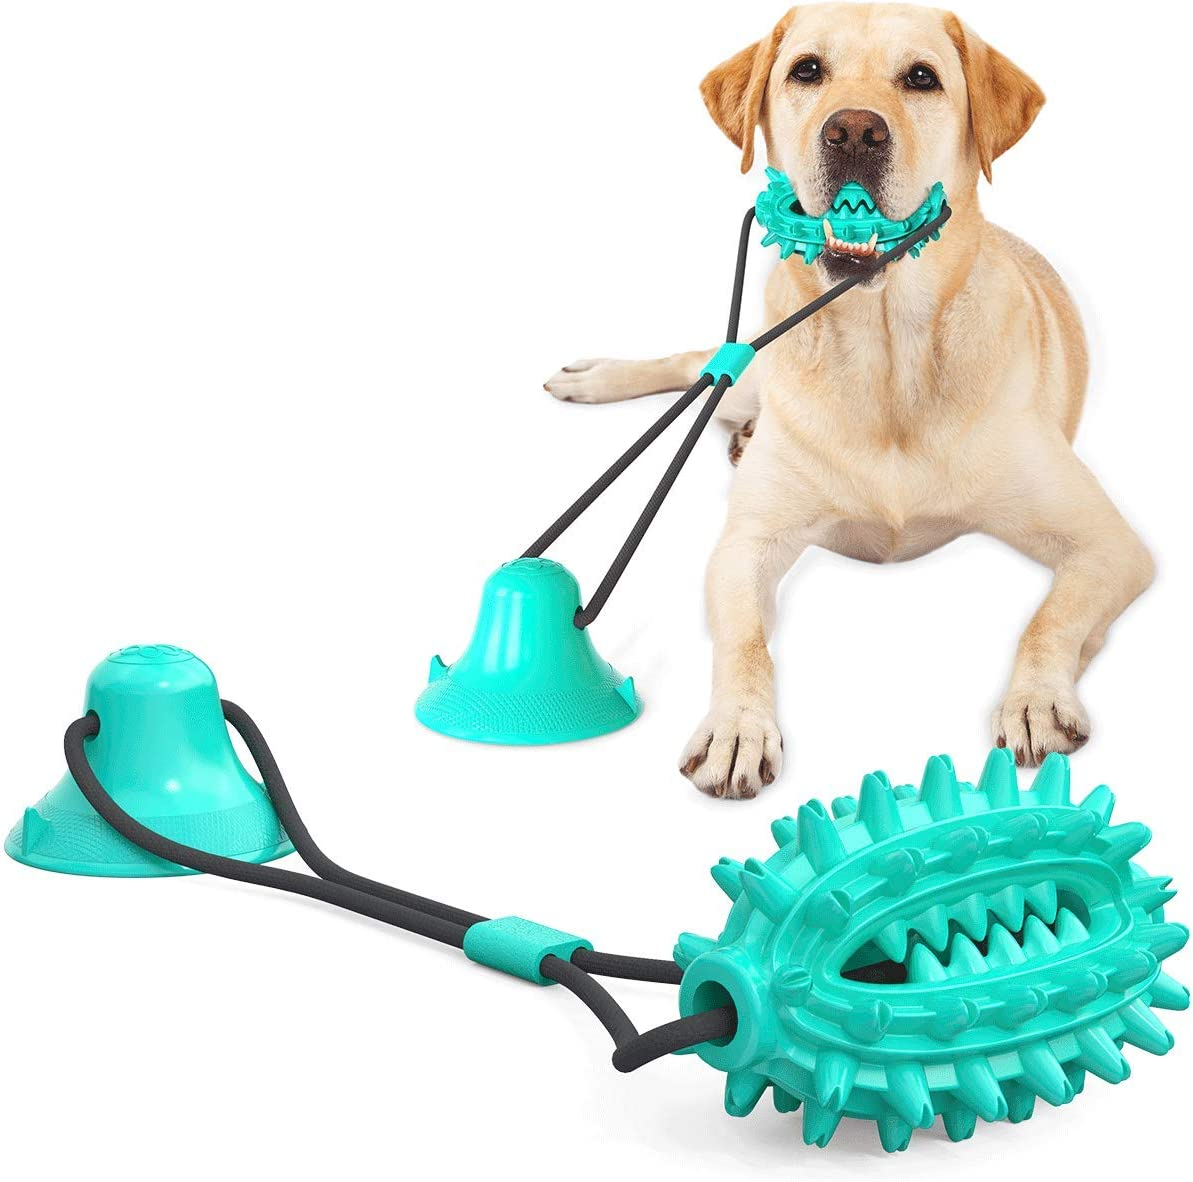 BeiNing Dog Chew Suction New popularity Cup Tug War Multifunction Toy of Chewe Direct stock discount